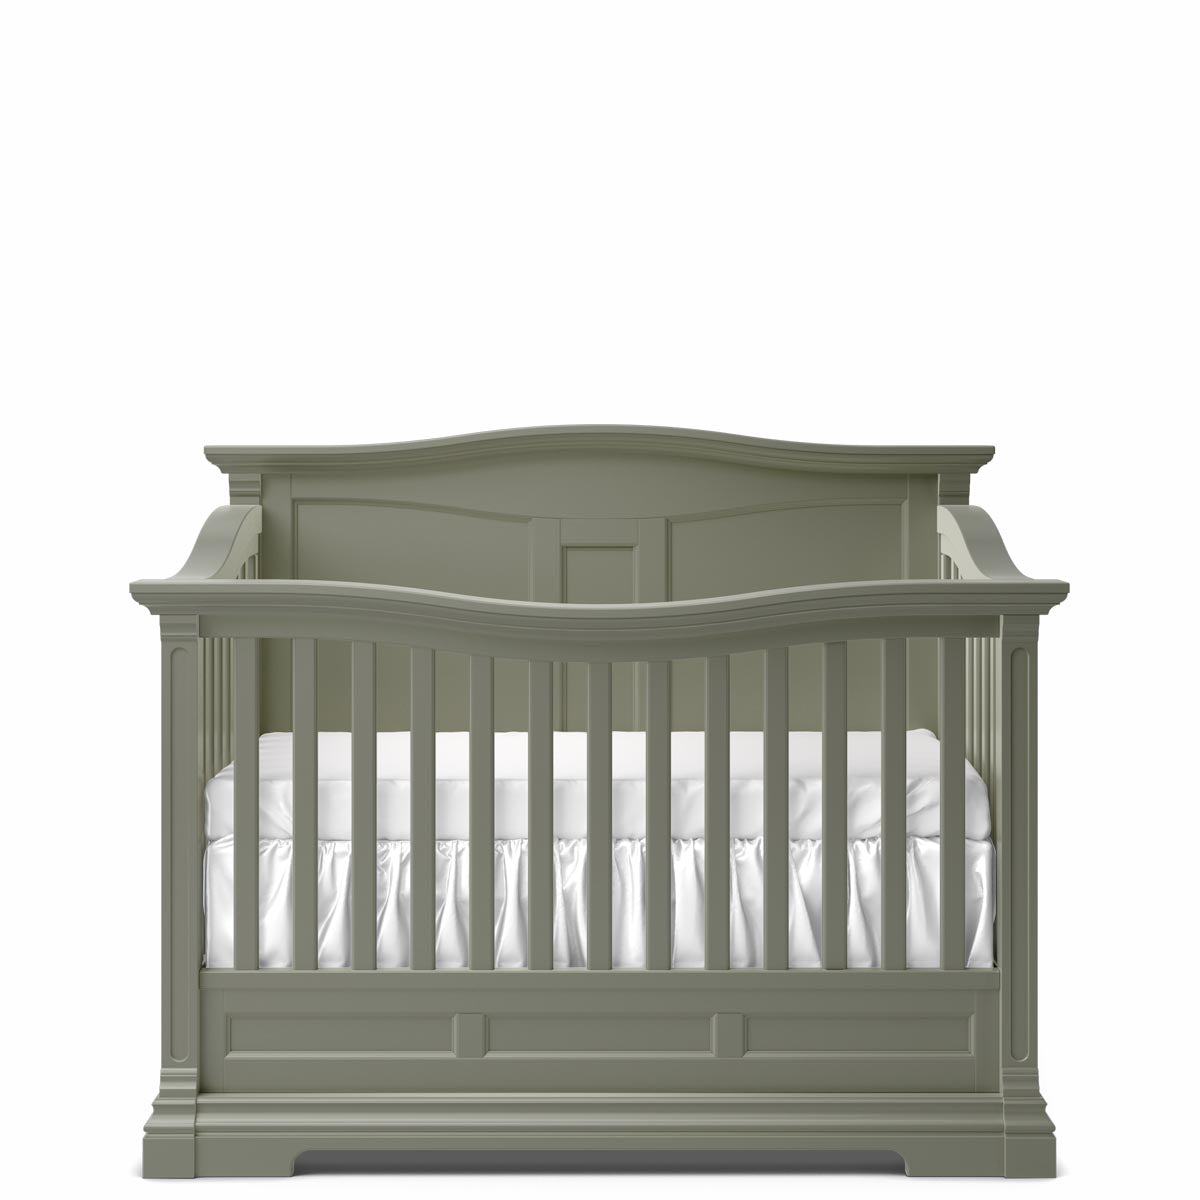 Romina Imperio Convertible Crib / Solid Panel